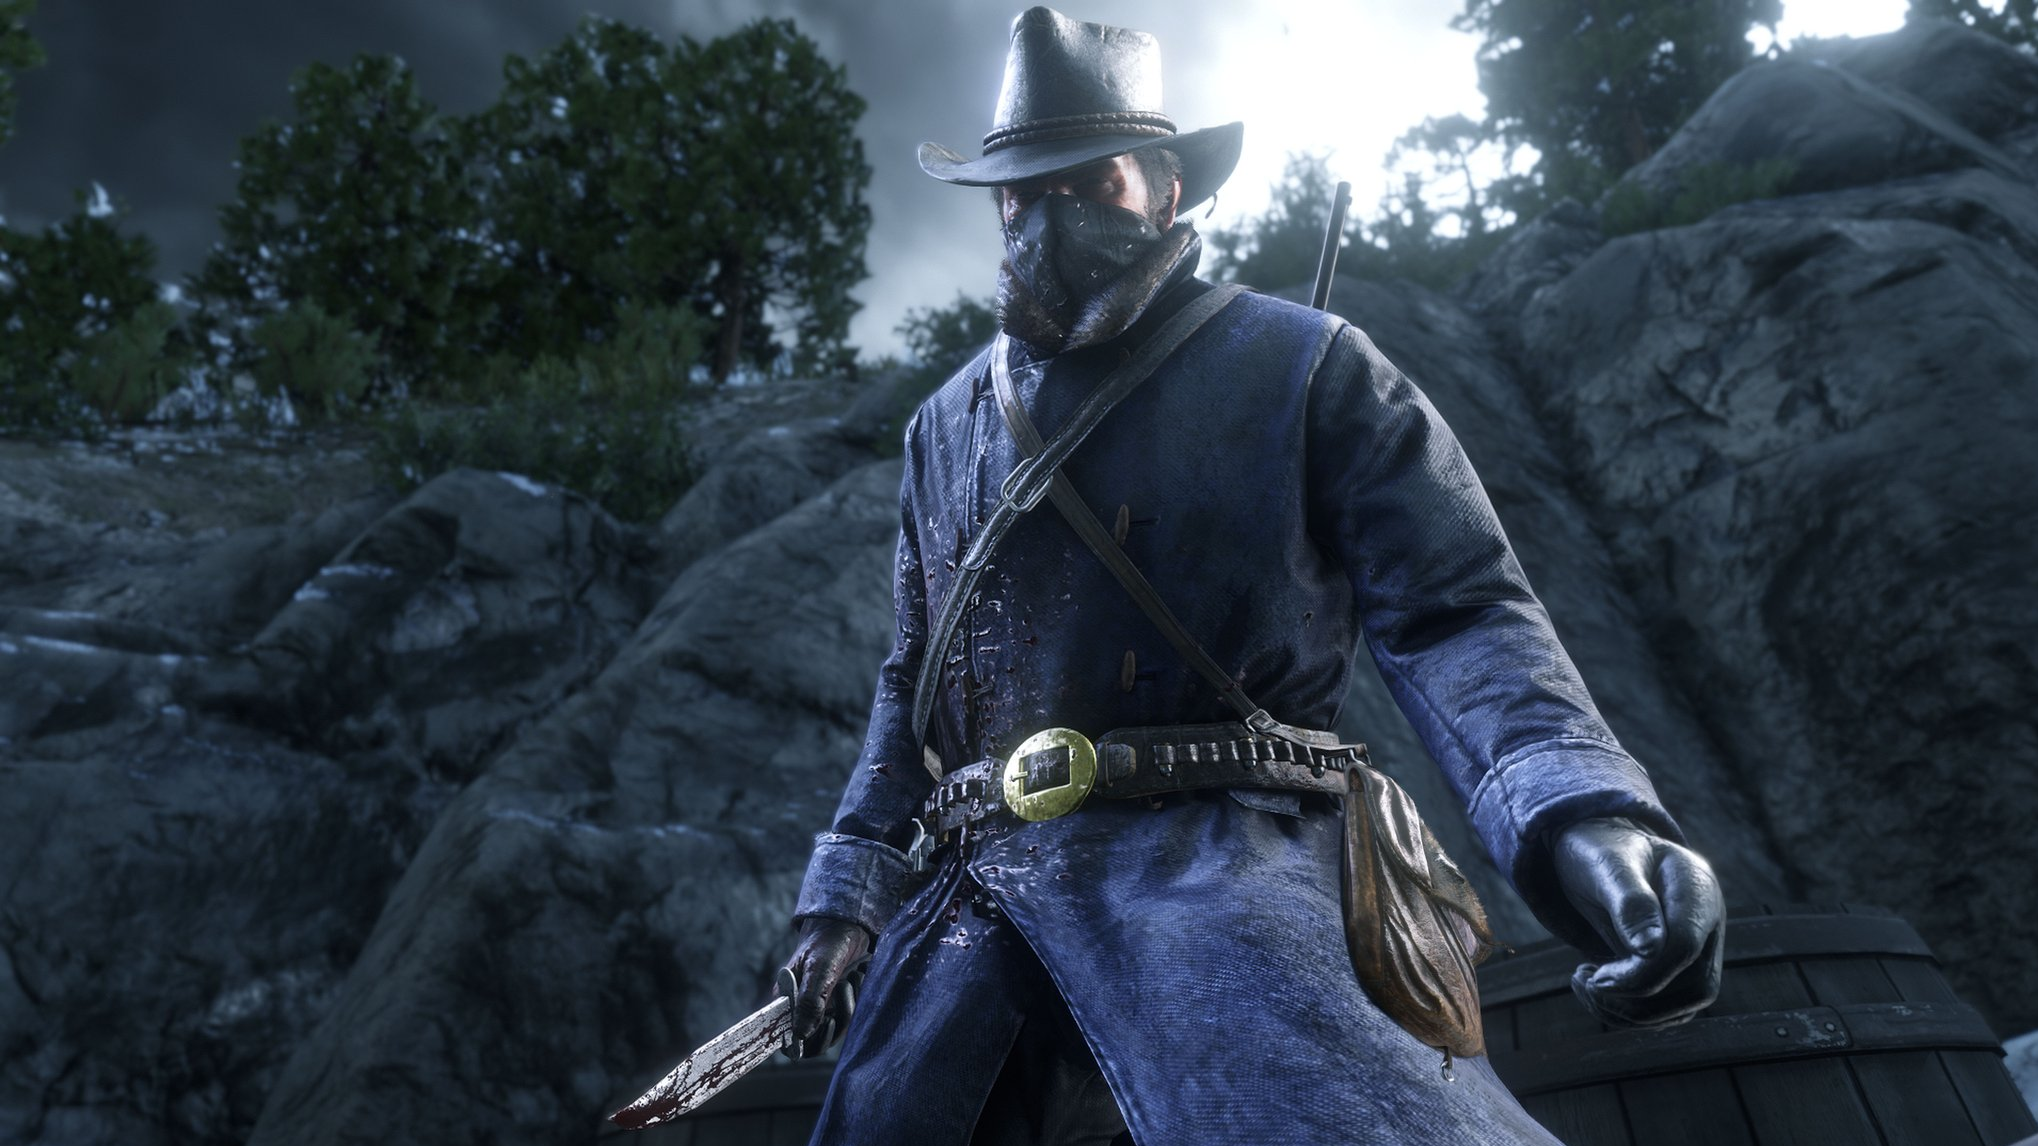 Retailer Creates Red Dead Redemption 2 PC Listing, Releases In 2019